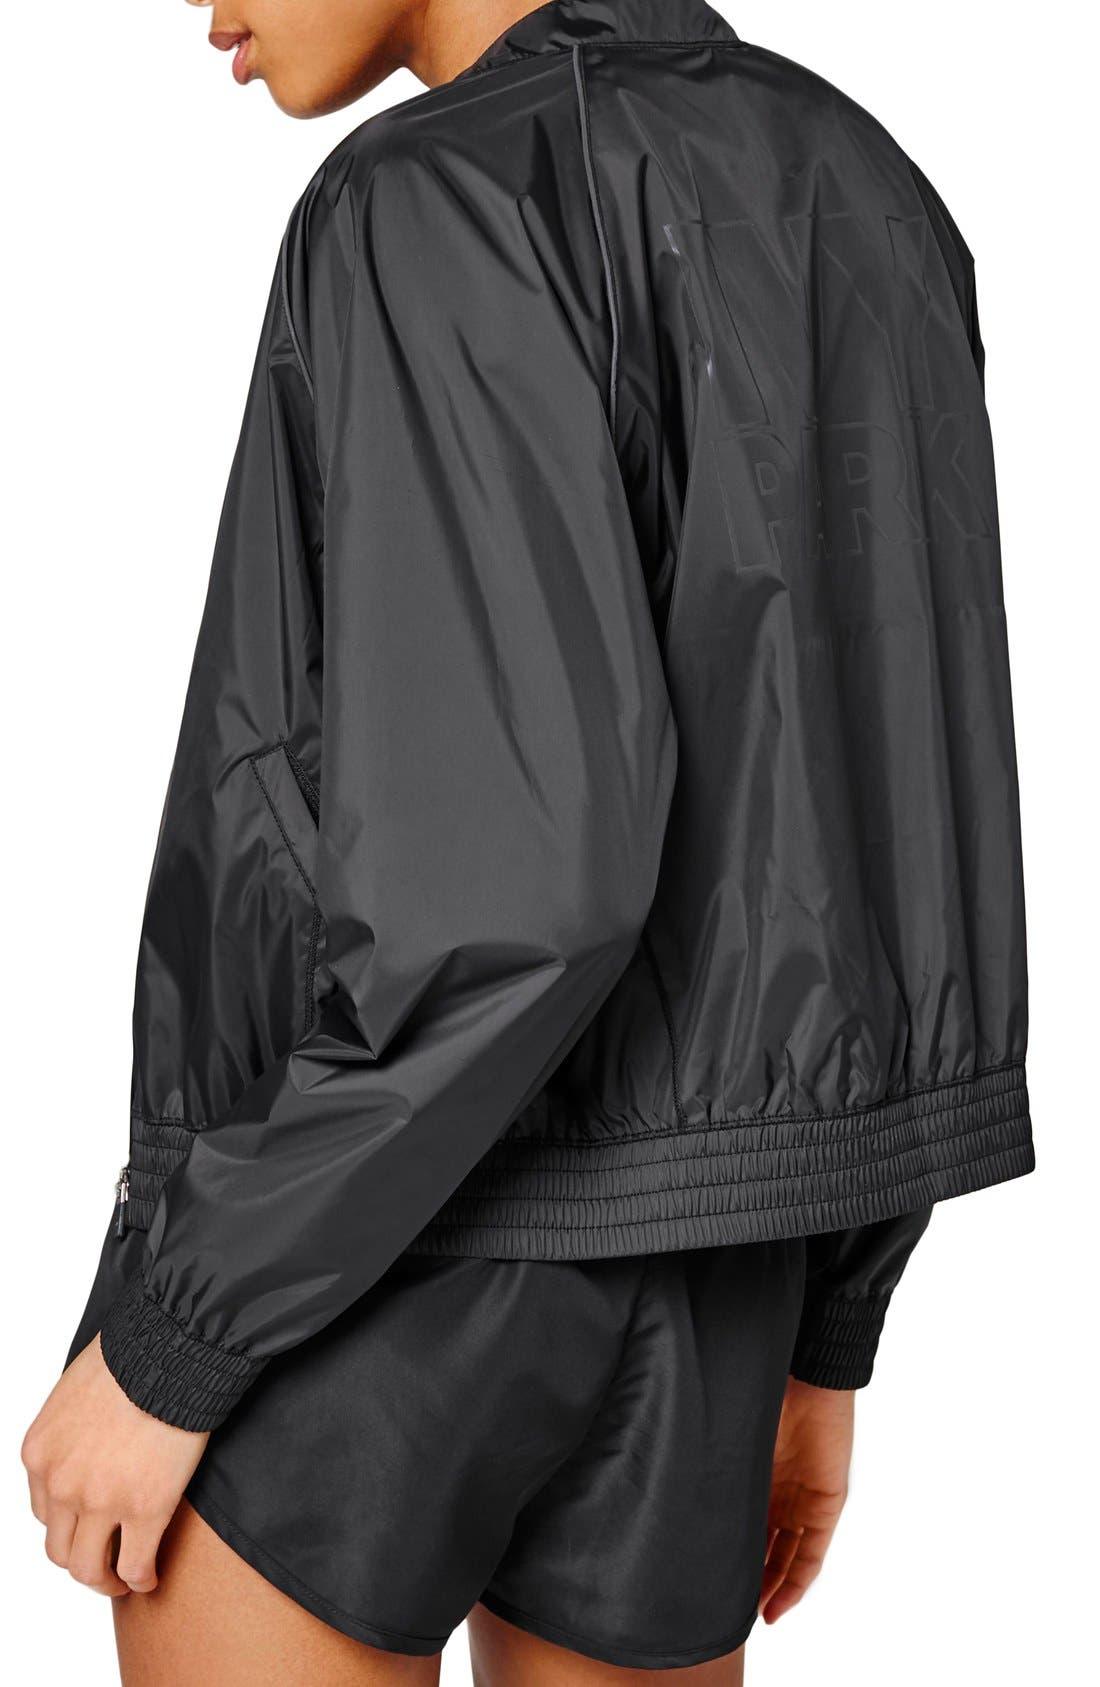 IVY PARK<SUP>®</SUP>, Technical Bomber Jacket with Reflective Logo, Alternate thumbnail 3, color, 001